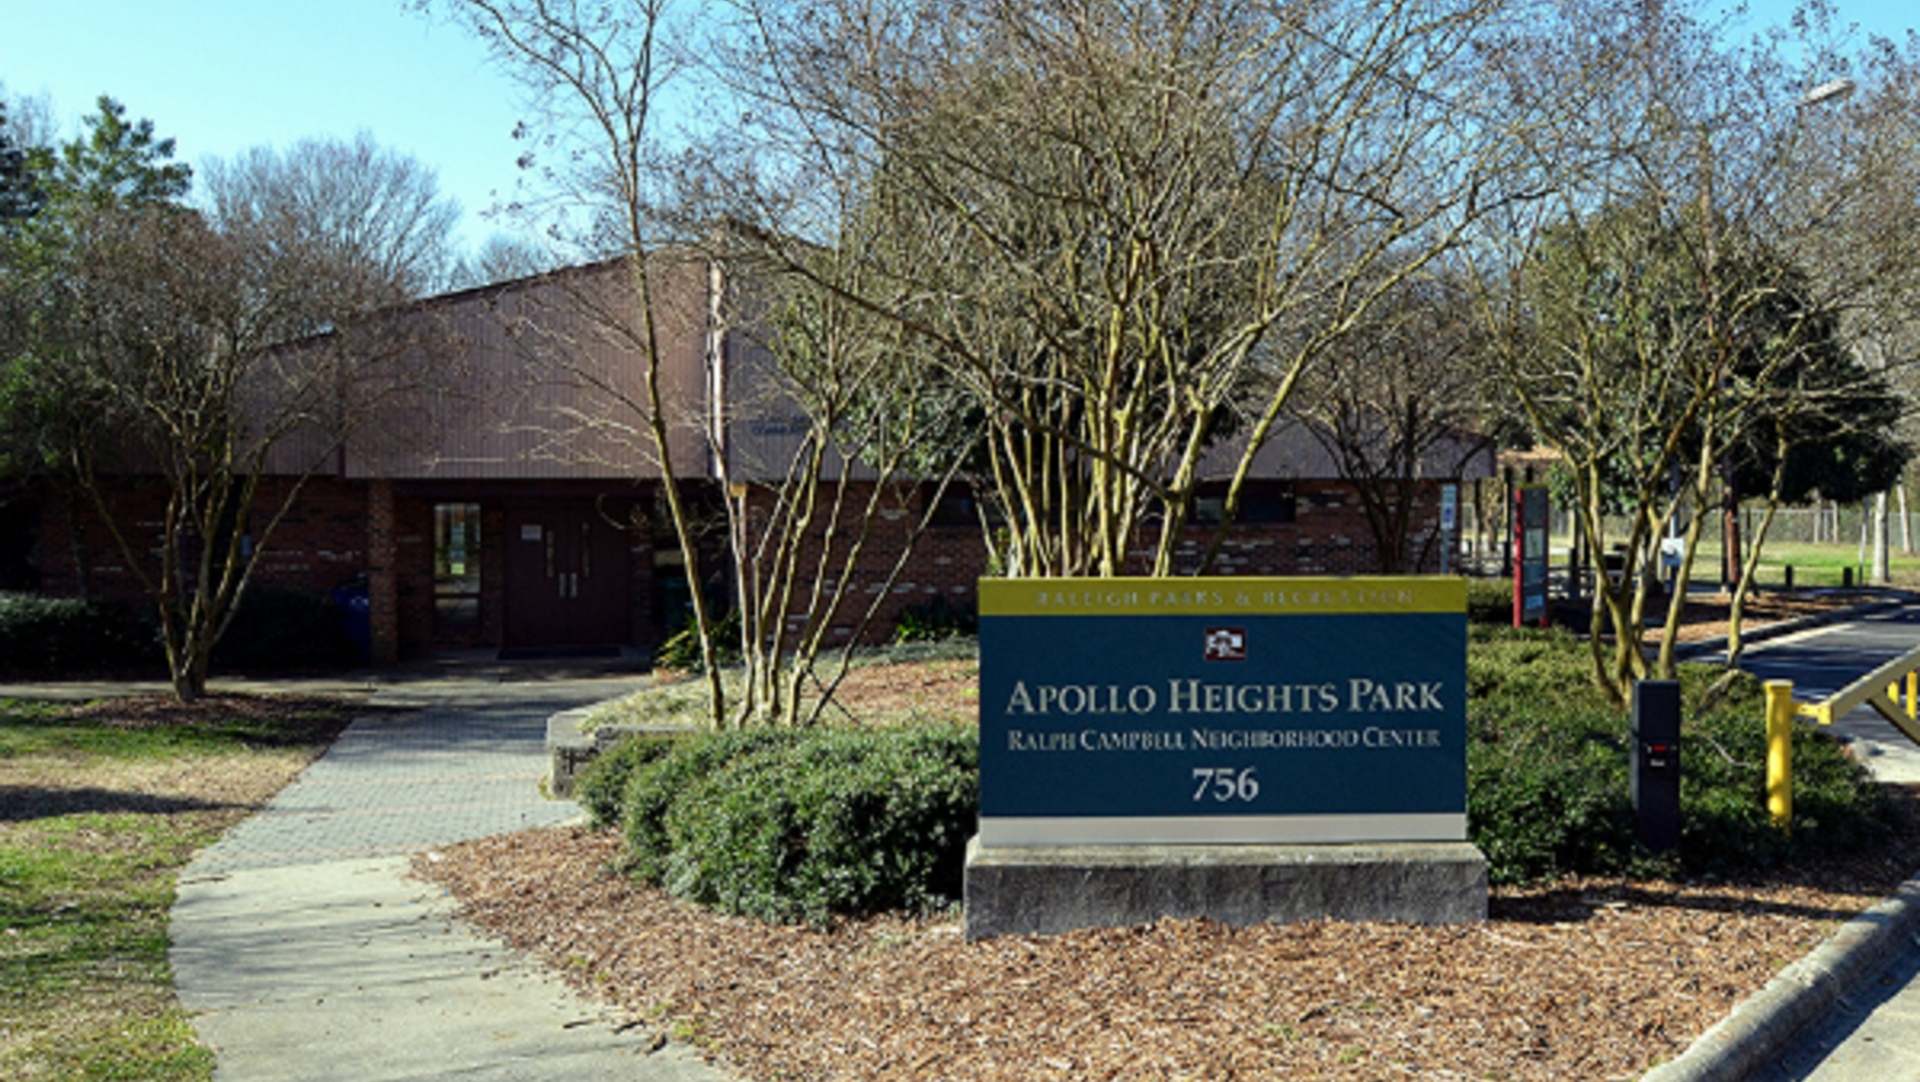 Sign and front of brick building that is the Apollo Heights Community Center